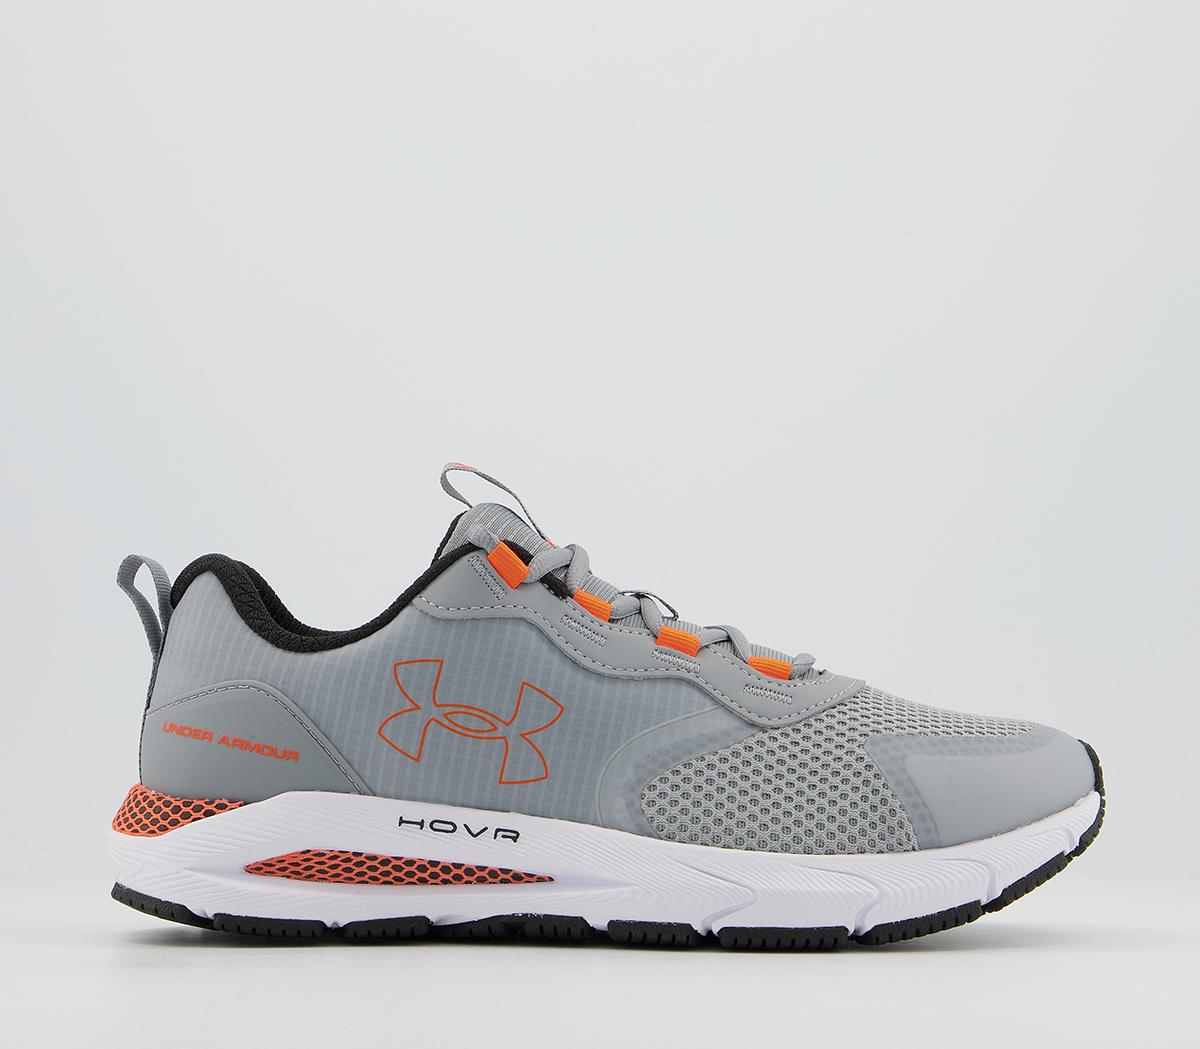 Hovr Sonic Strt Trainers